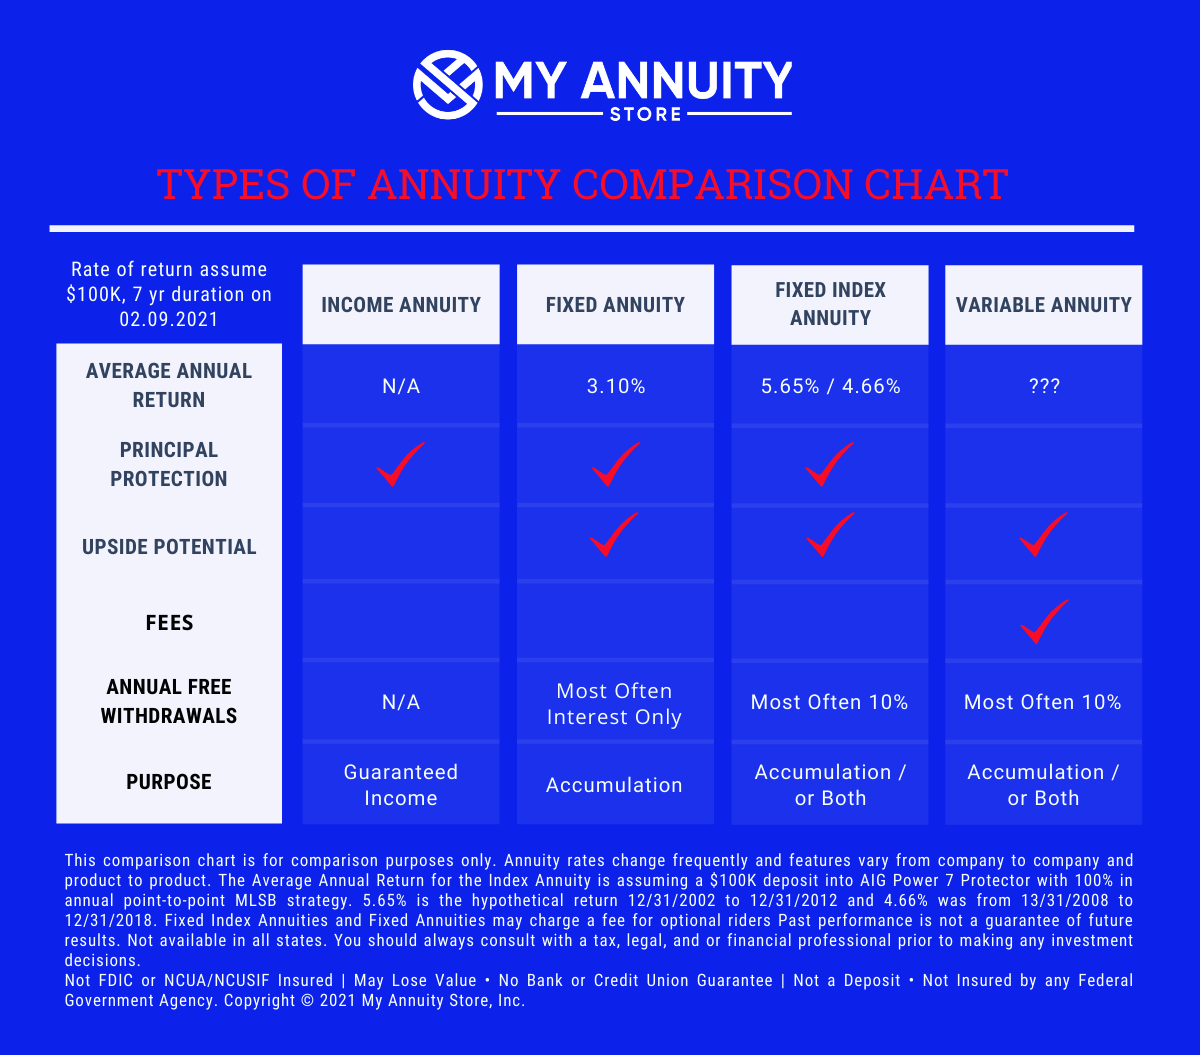 Annuity type comparison chart